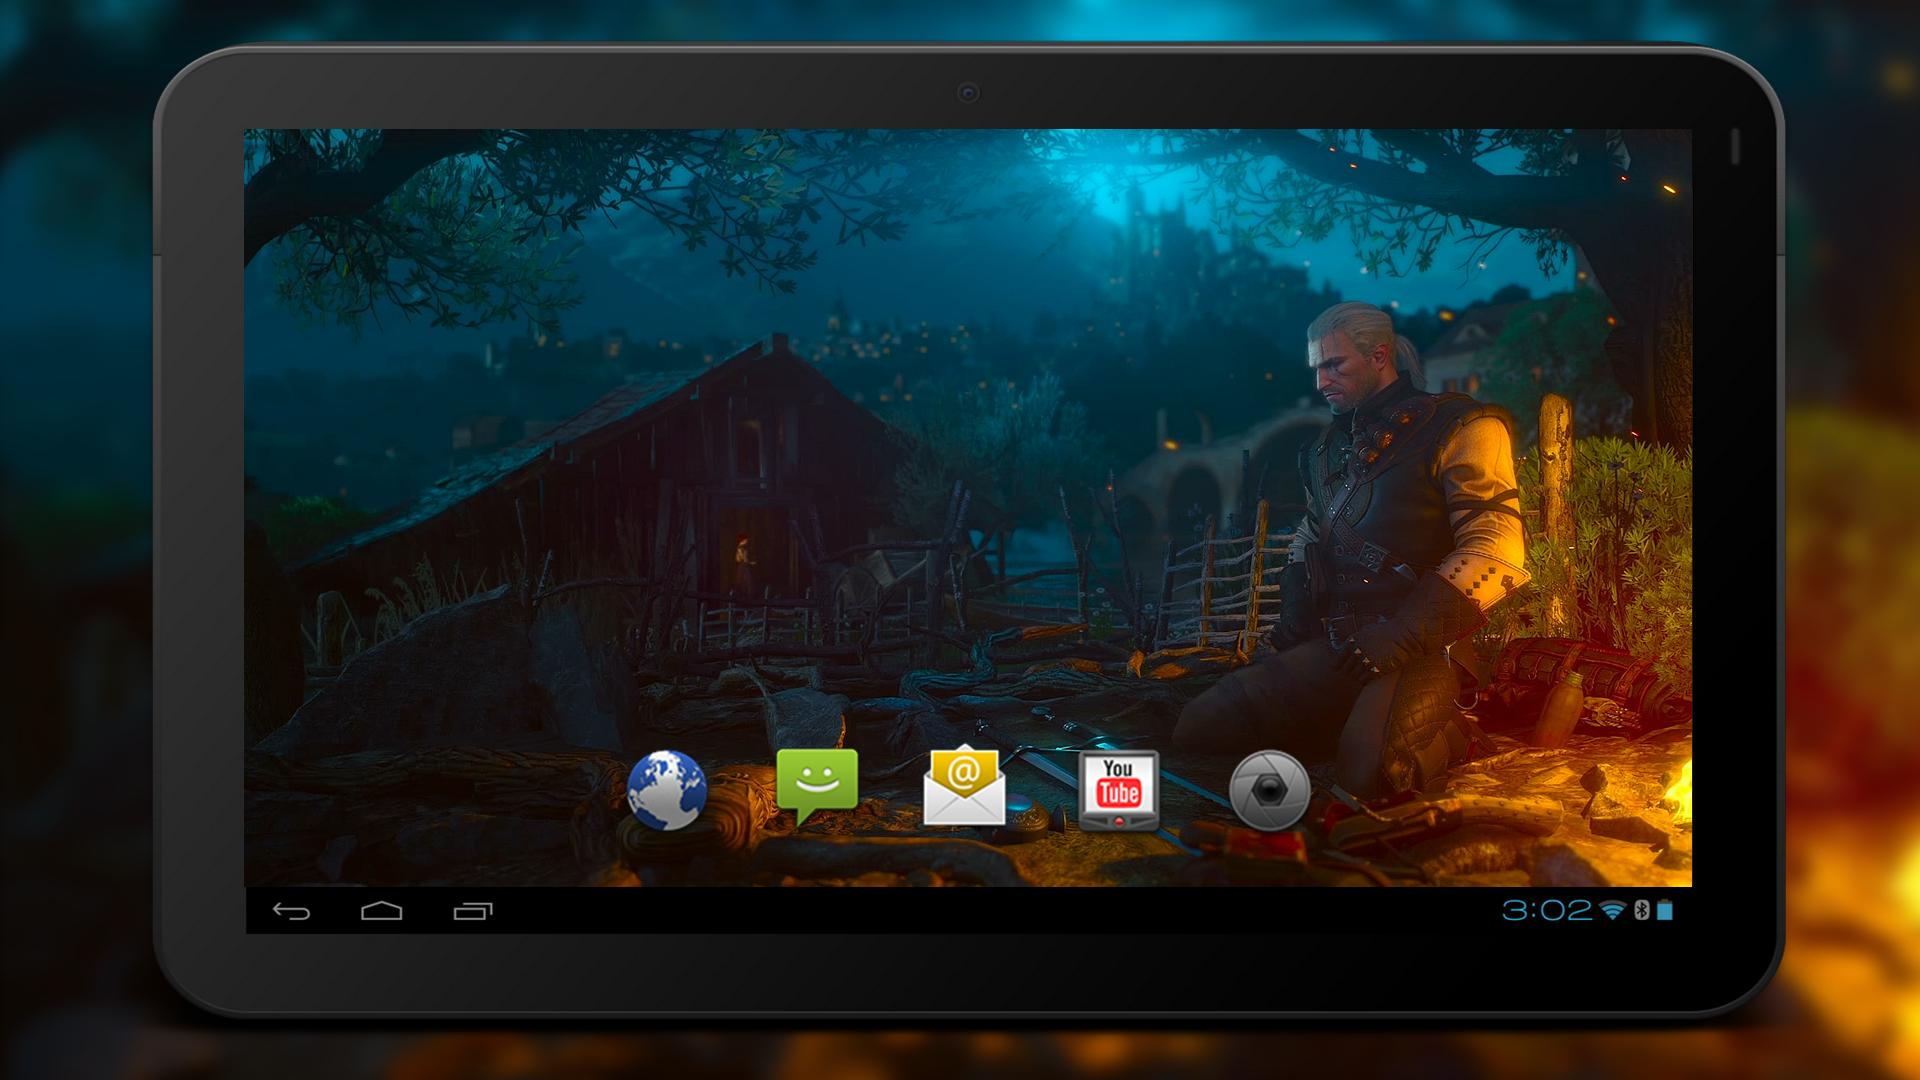 4k Witcher 3 Blood And Wine Live Wallpaper For Android Apk Download